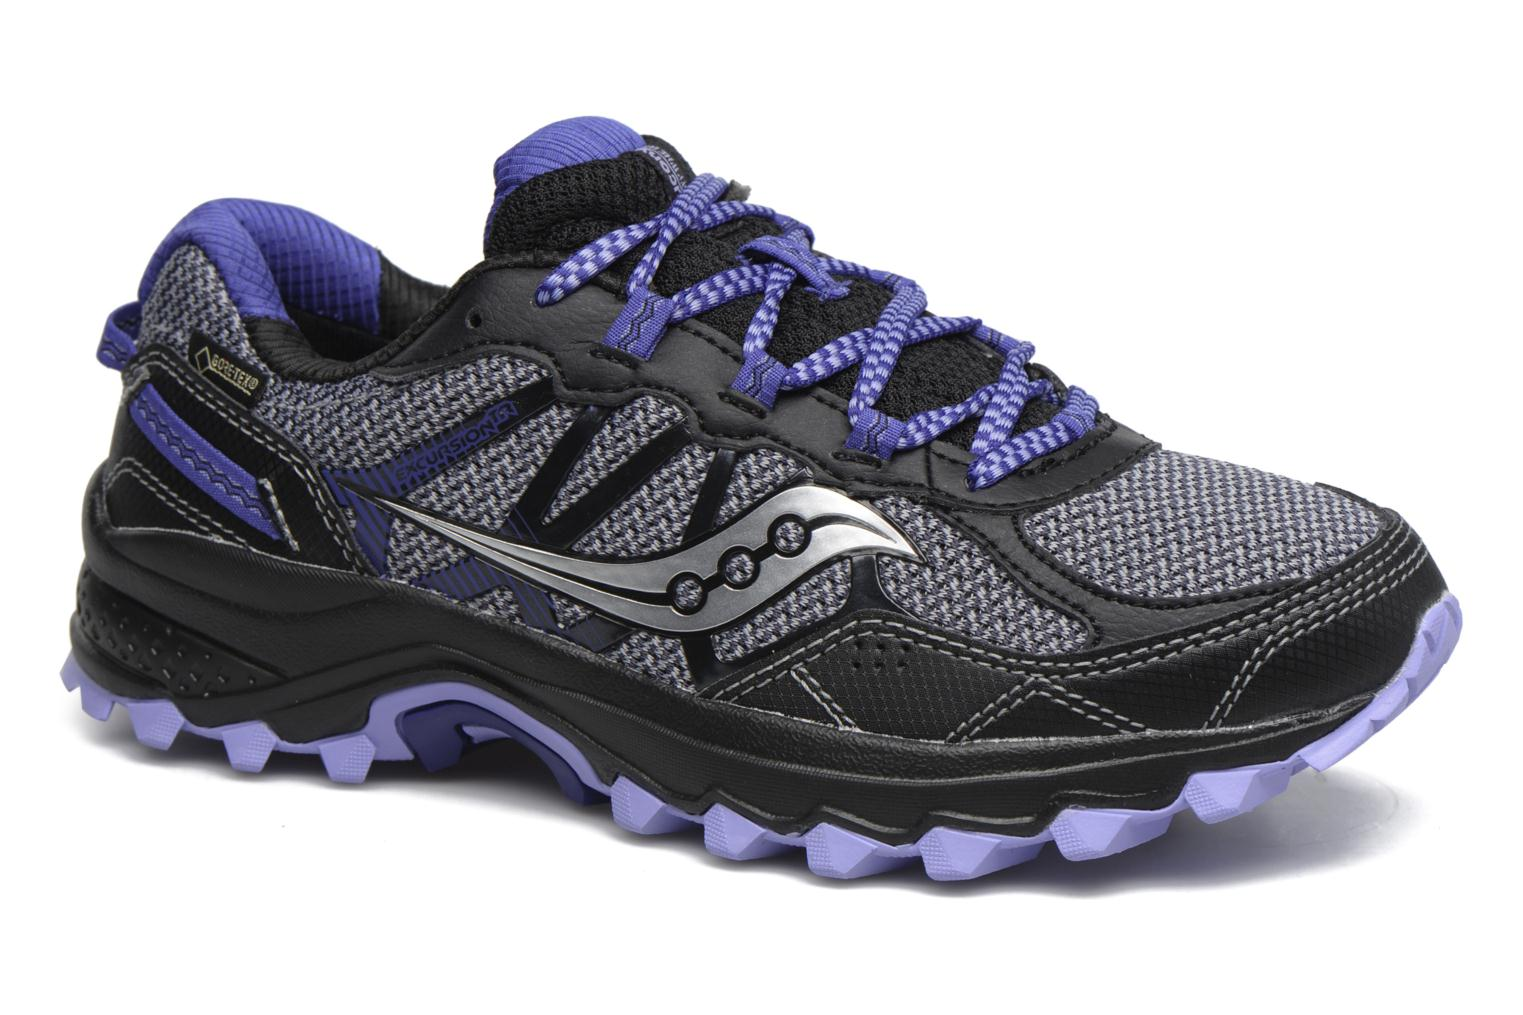 Excursion Tr11 Gtx W by SauconyRebajas - 30%